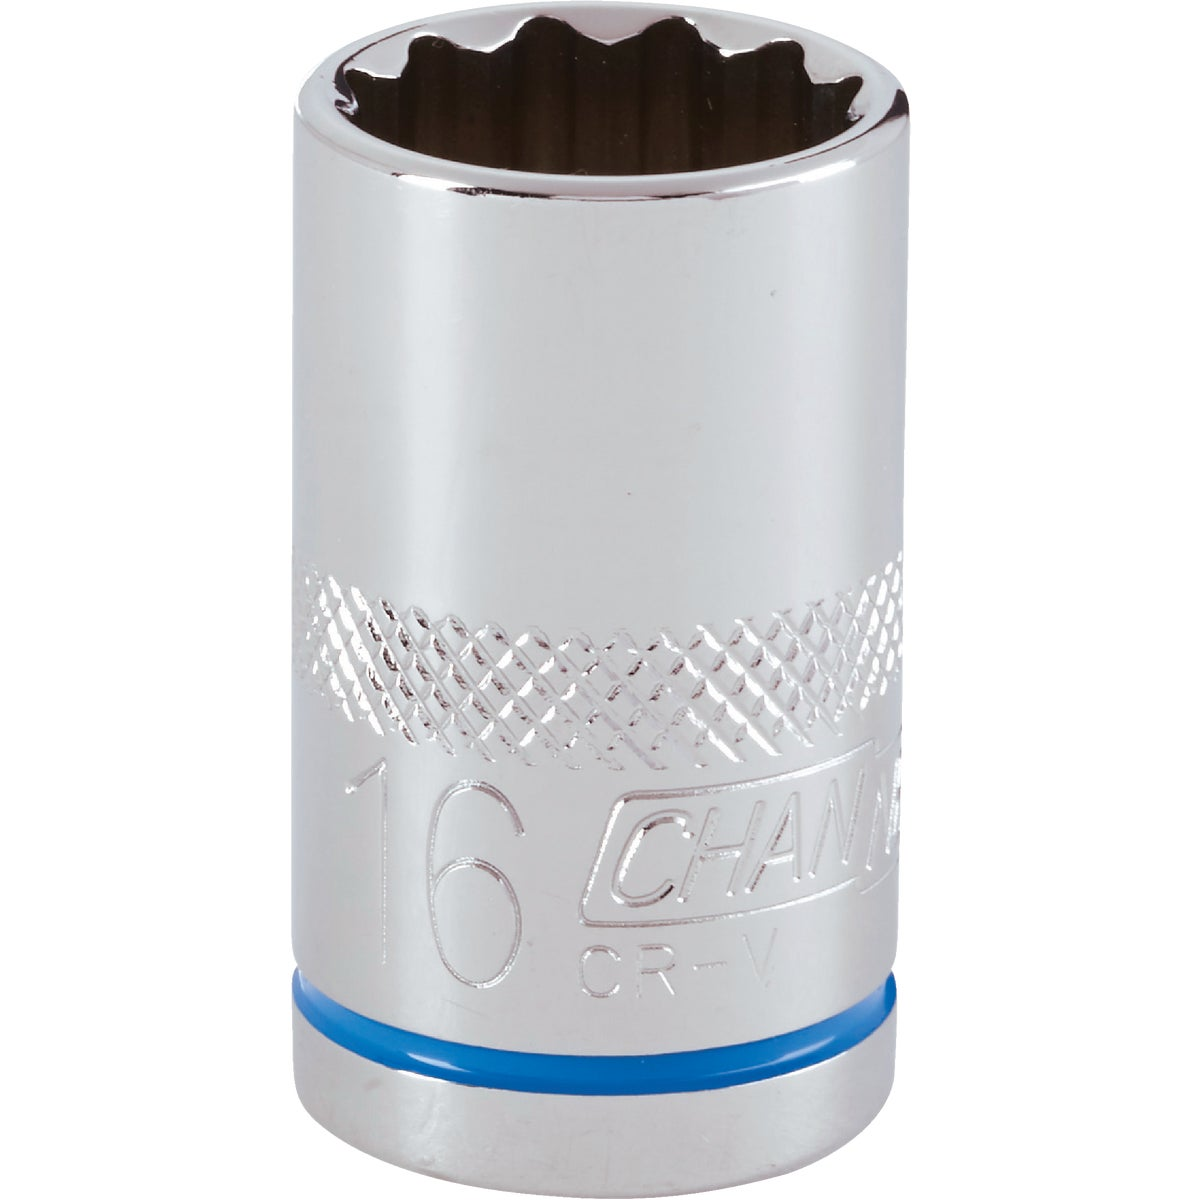 16MM 1/2 DRIVE SOCKET - 397660 by Do it Best